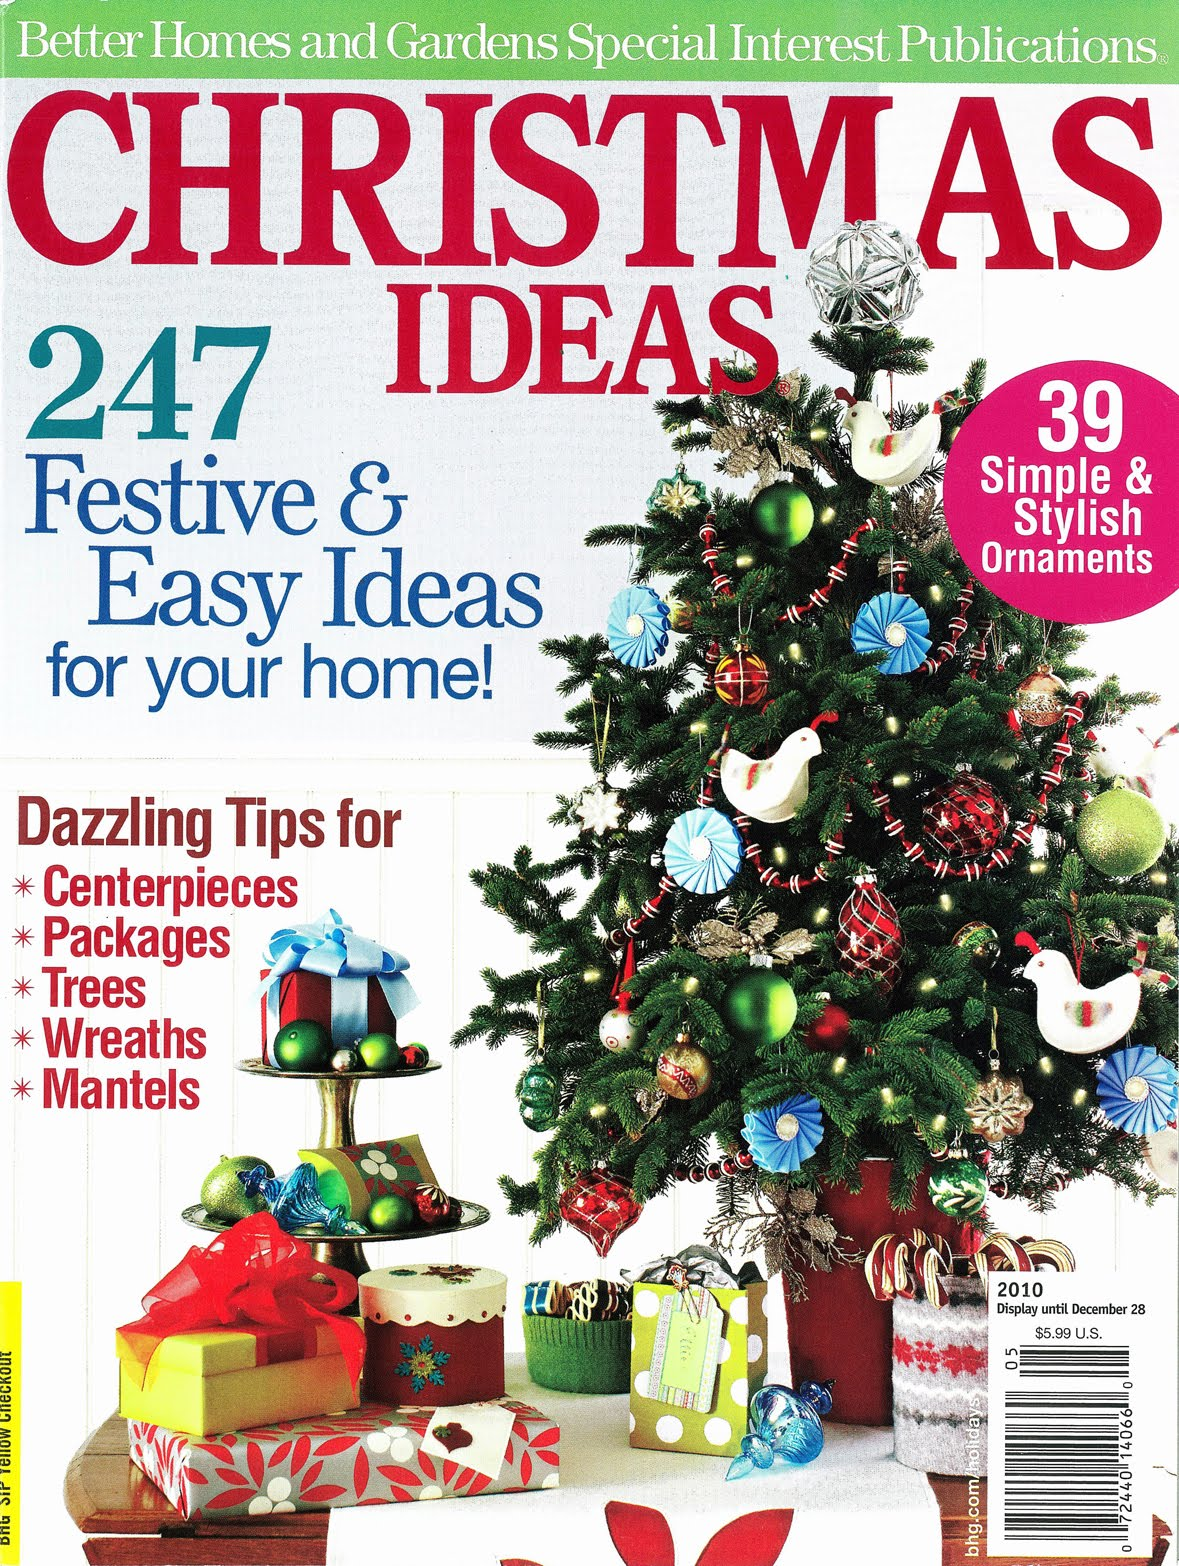 Bricolage october 2010 Better homes and gardens christmas special